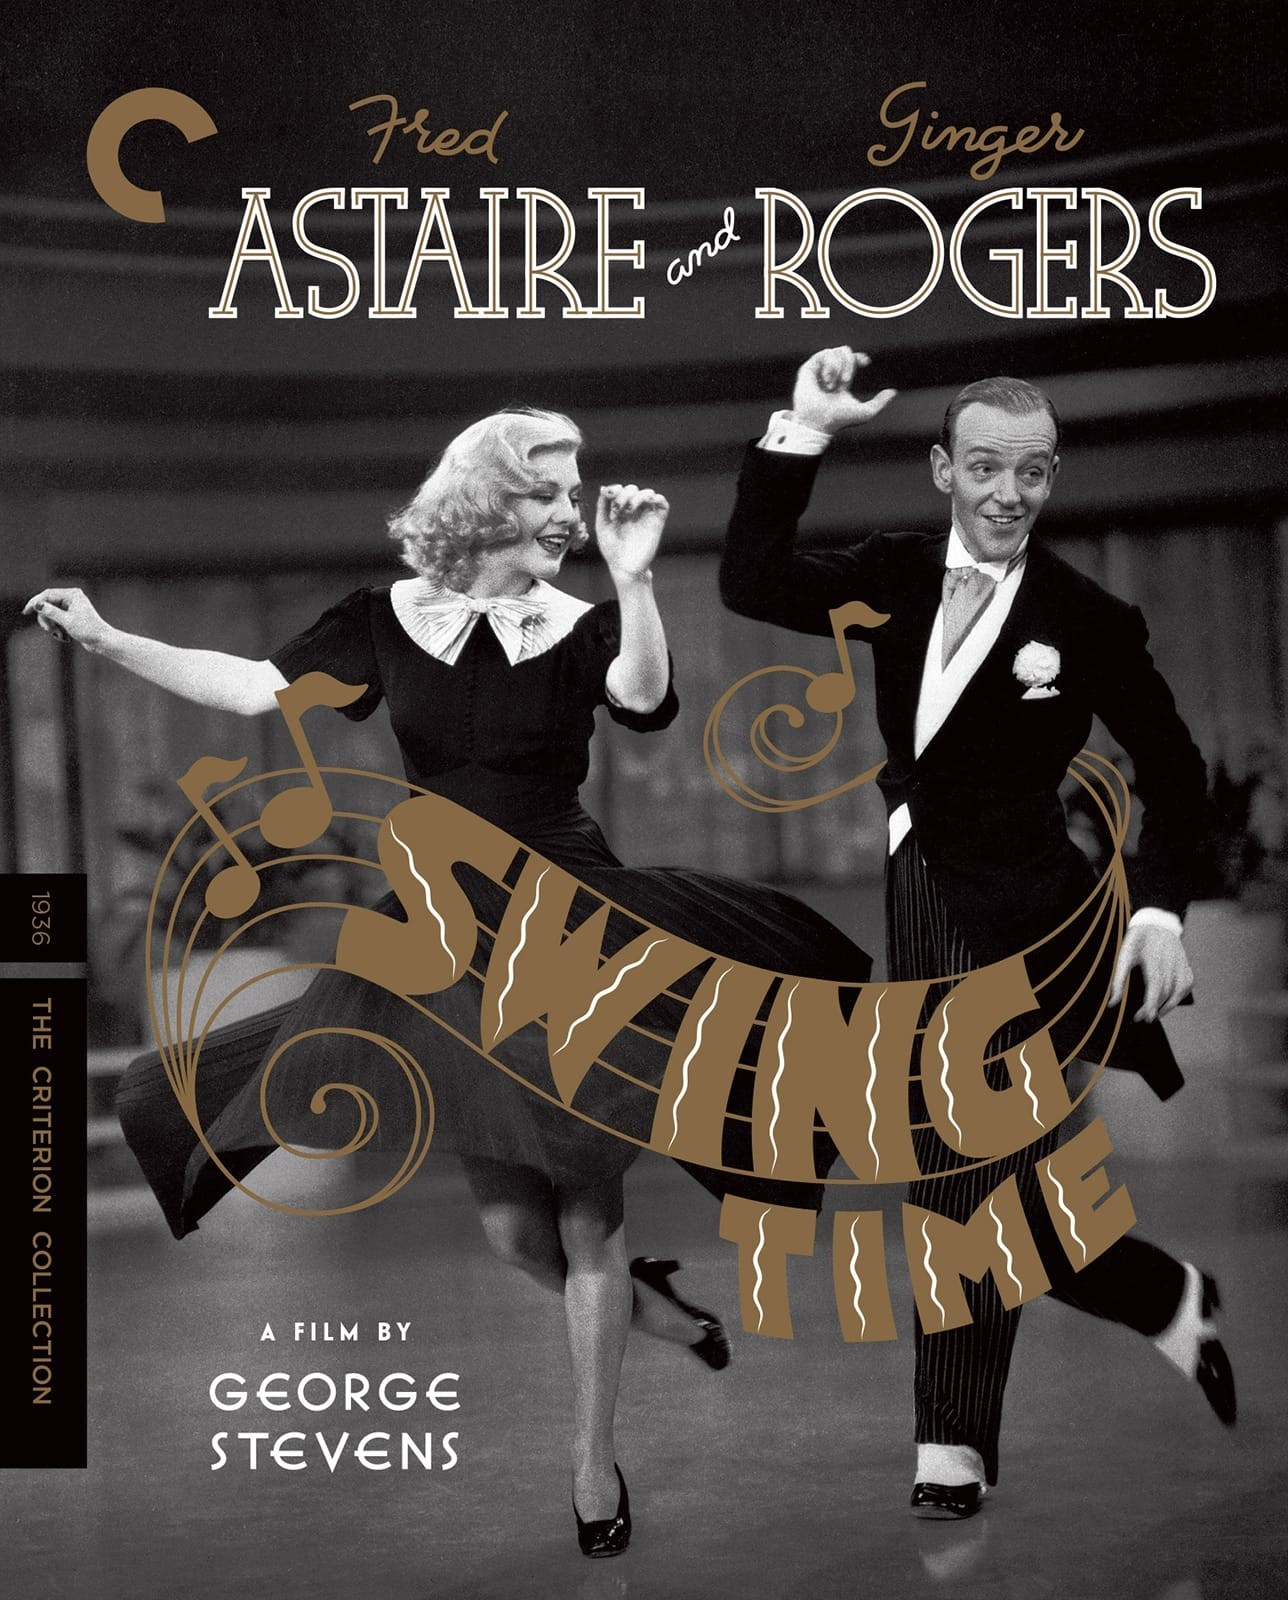 Swing Time (The Criterion Collection)(Blu-ray)(Region A)(Pre-order / Jun 11)